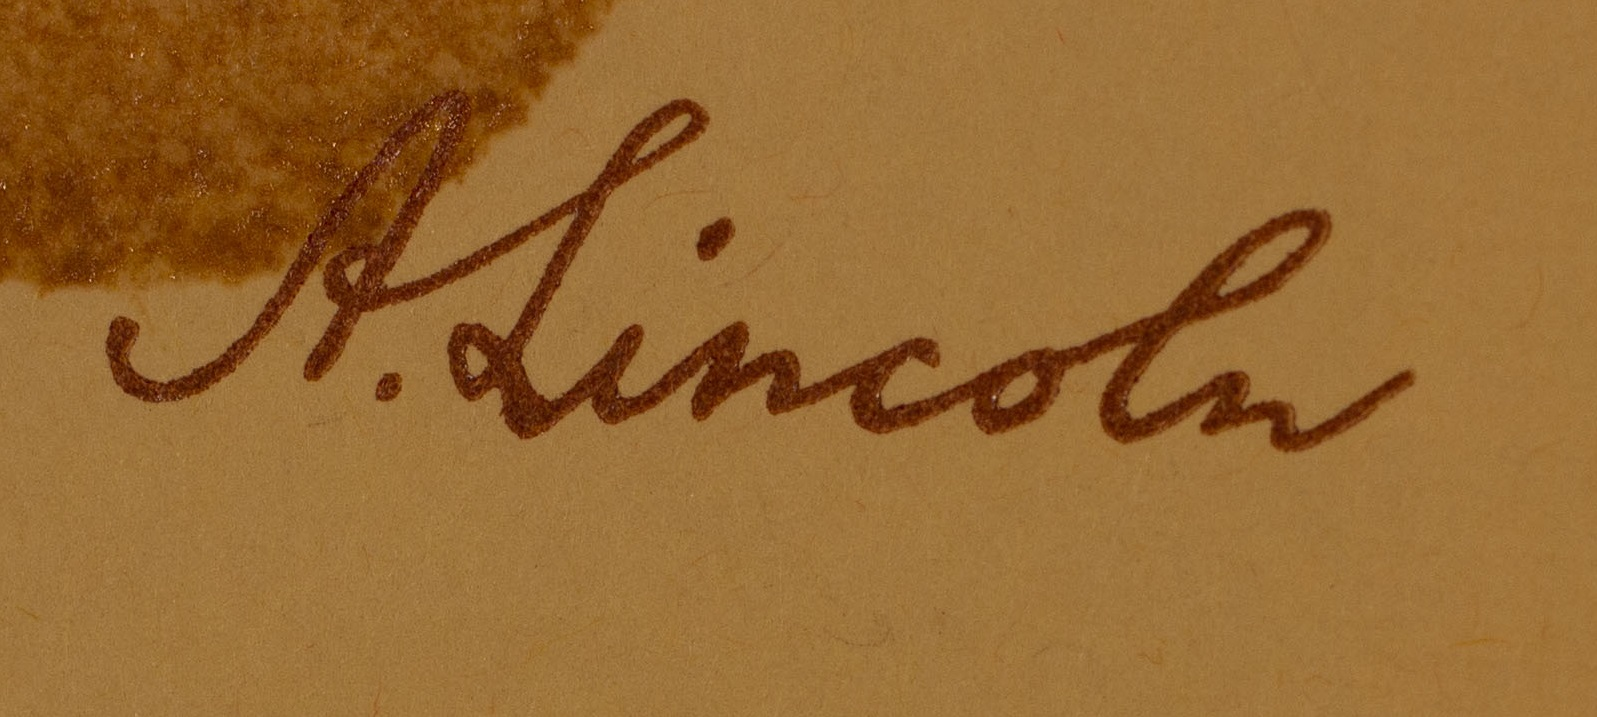 Abraham Lincoln's Devotional signed by President Lincoln